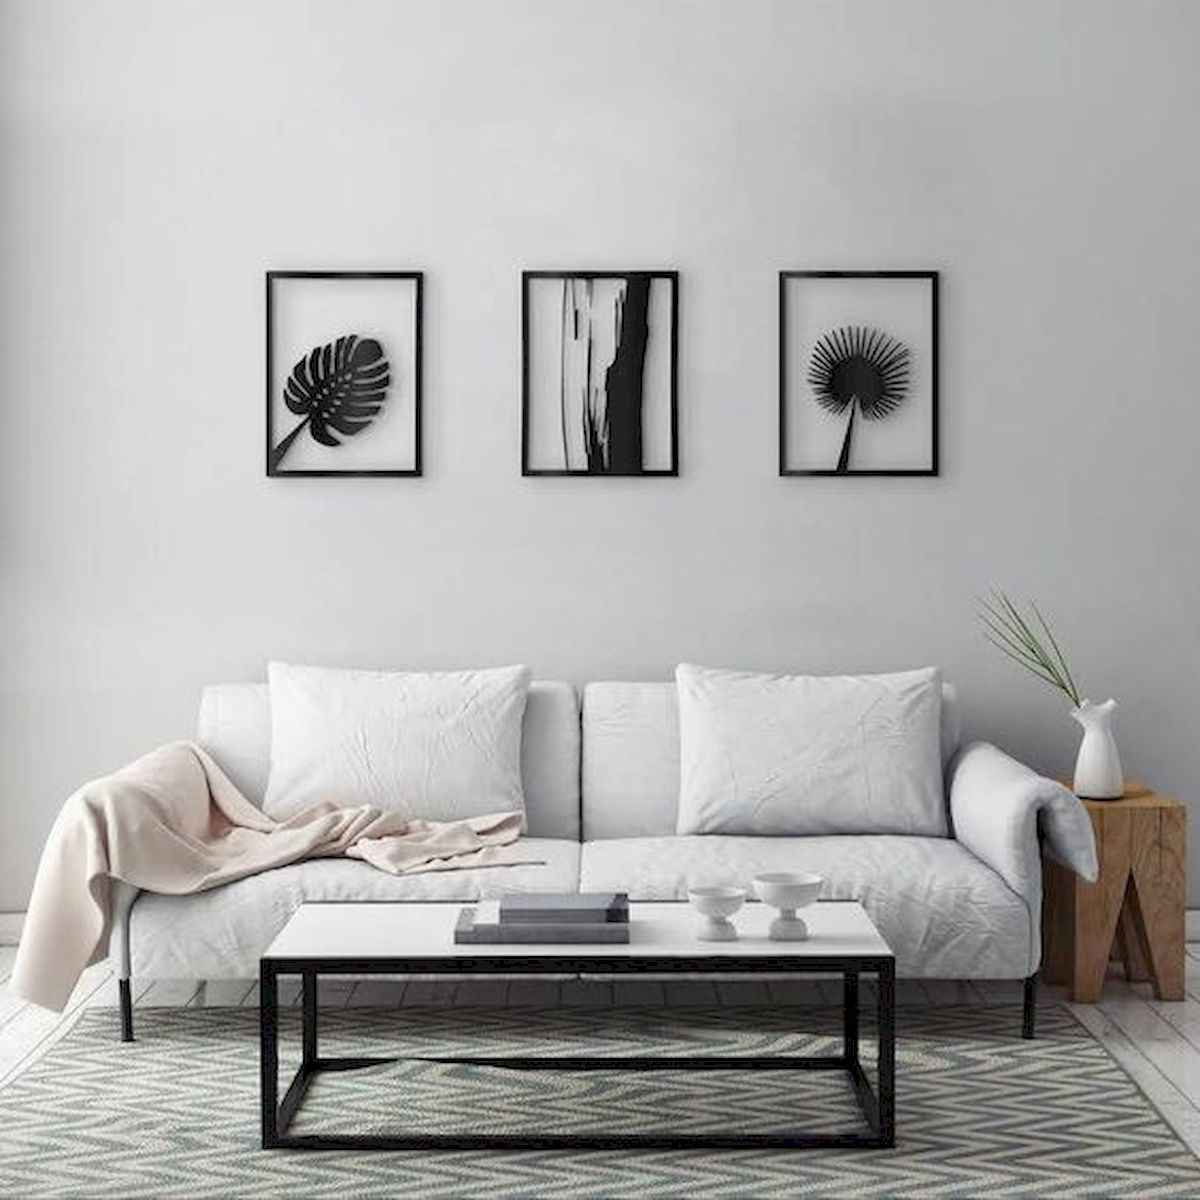 70 Stunning Grey White Black Living Room Decor Ideas And Remodel (12)